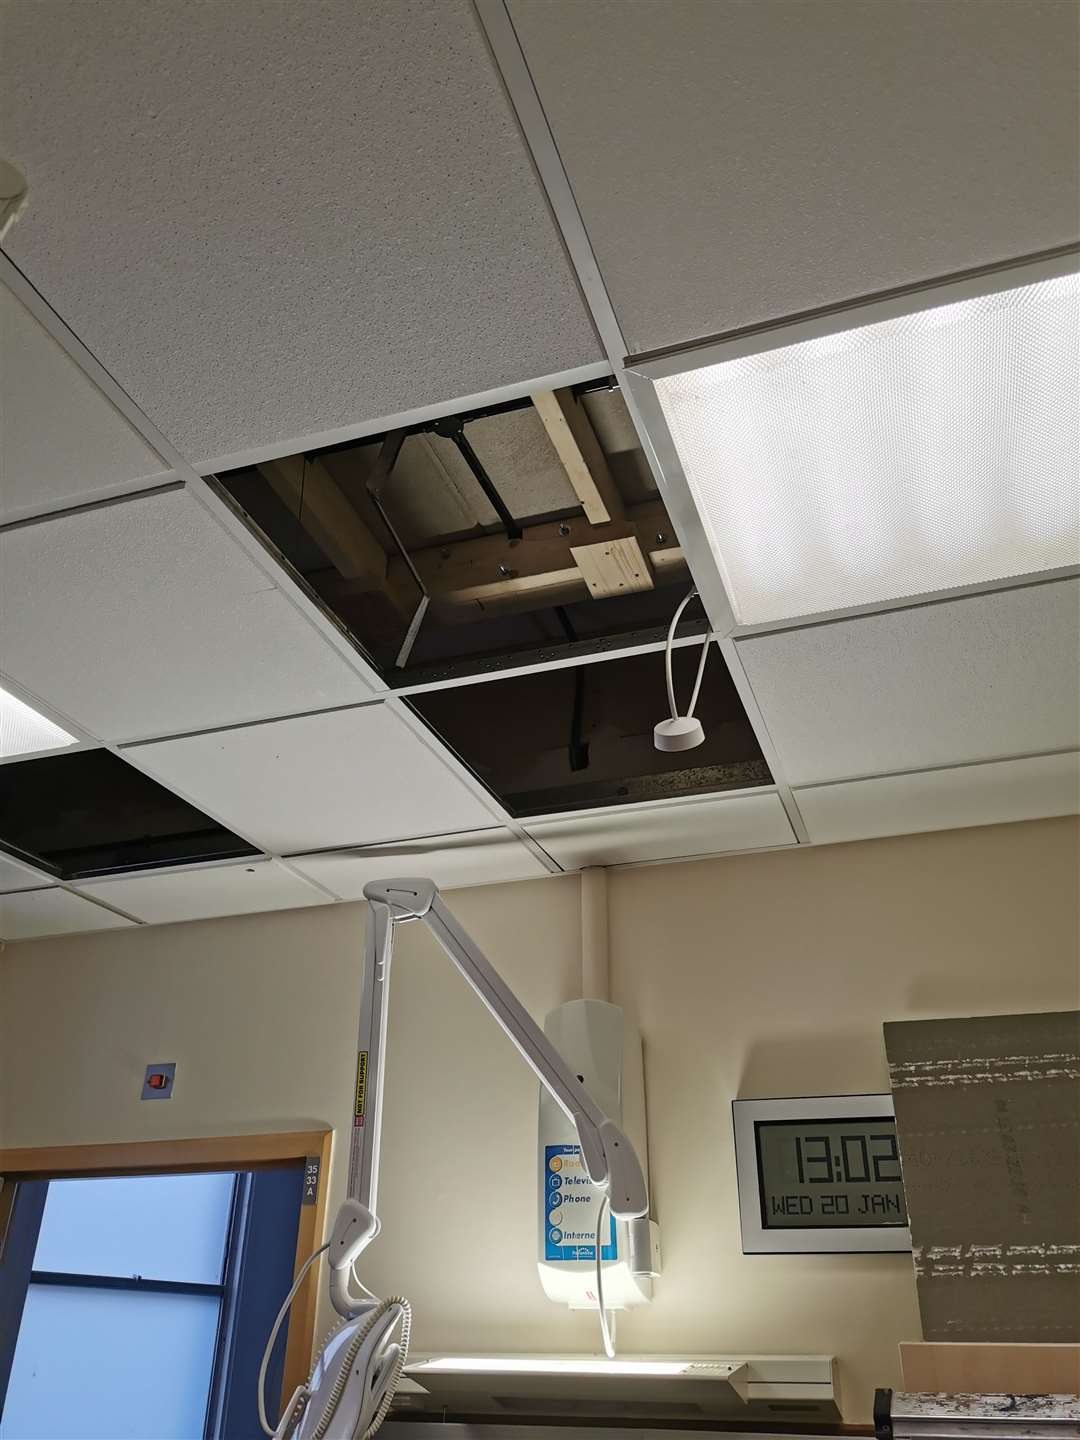 The current state of the QEH roof, held up by steel beams (48394278)